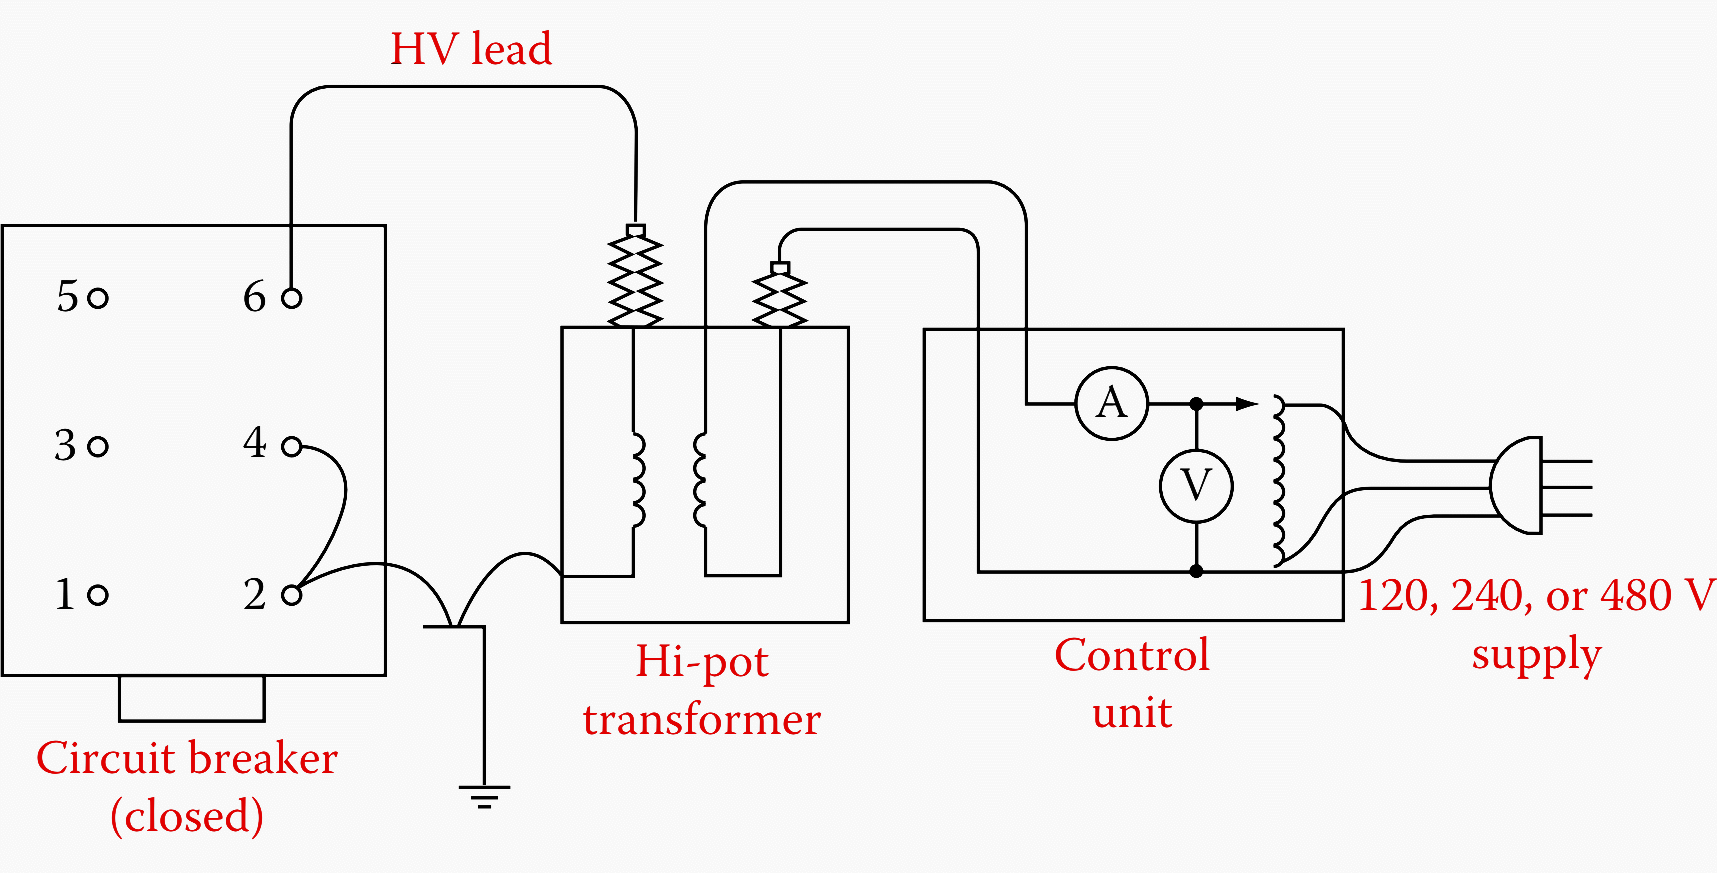 hight resolution of typical connection for hi pot test for circuit breaker in closed position